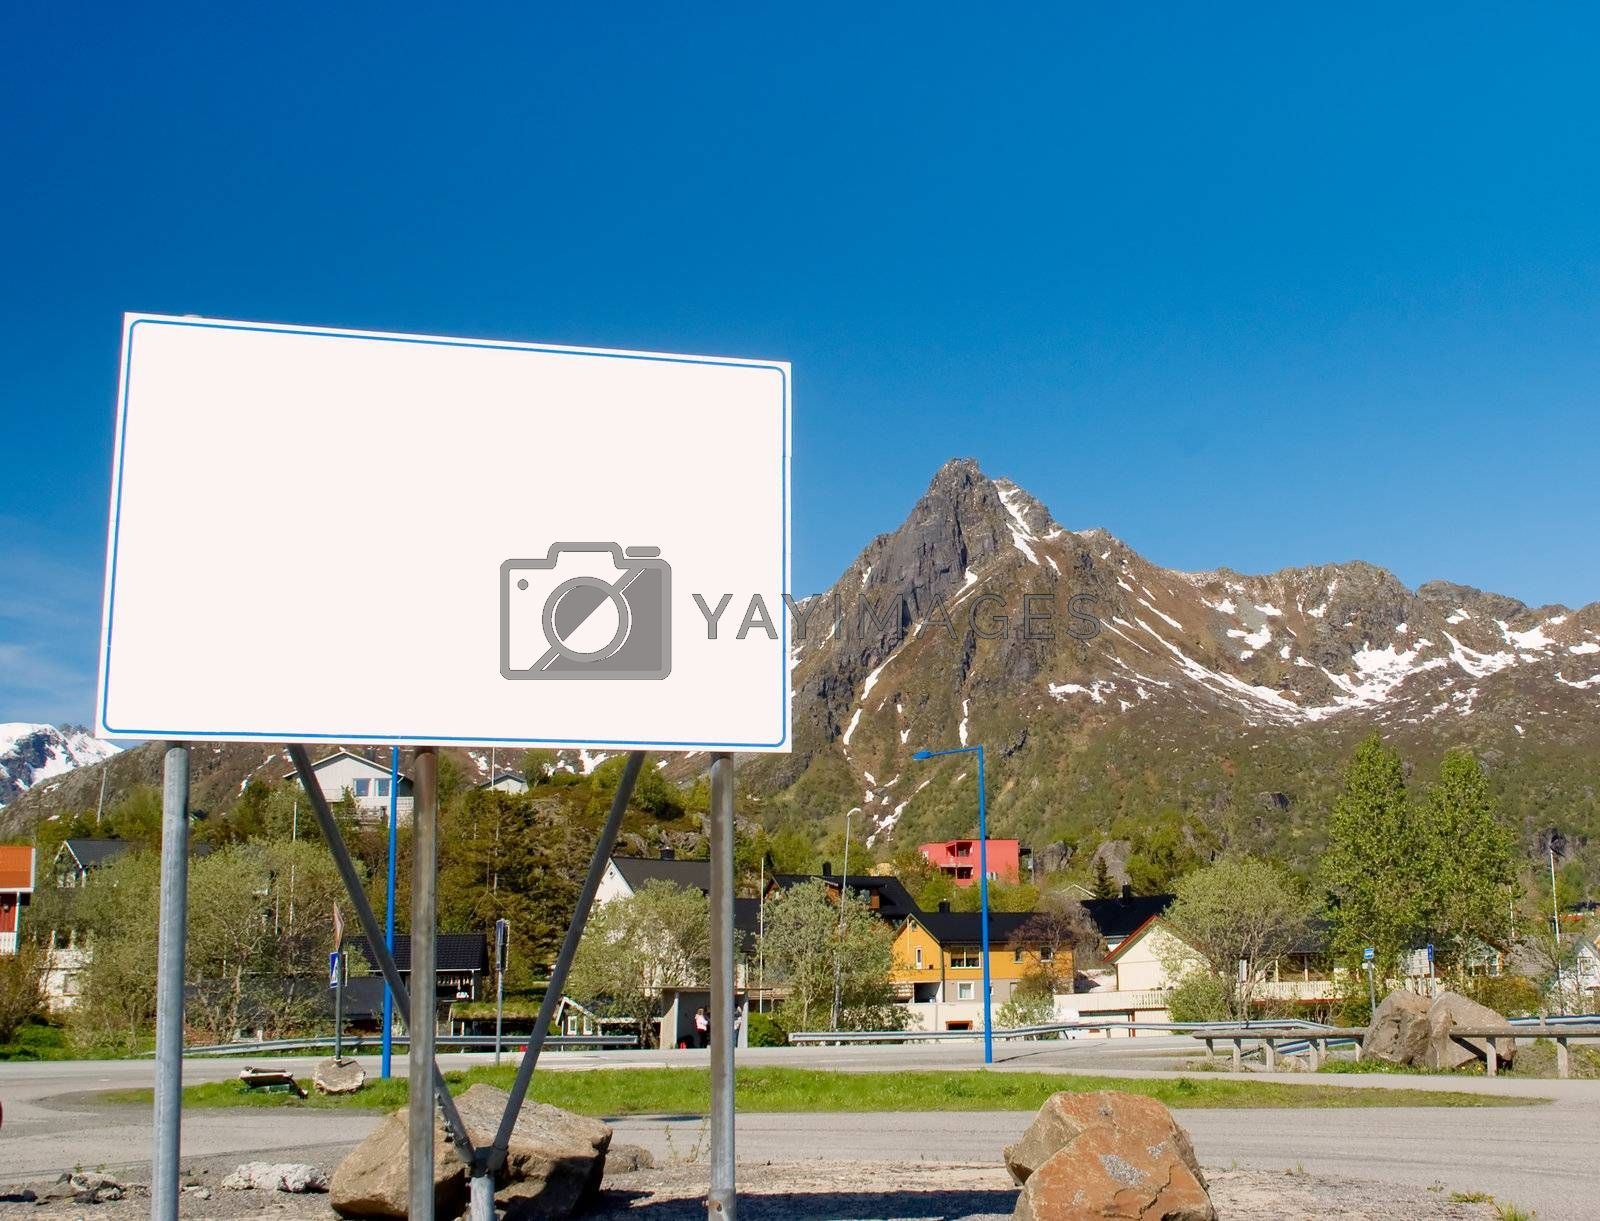 Big white billboard in the background of rocky mountains